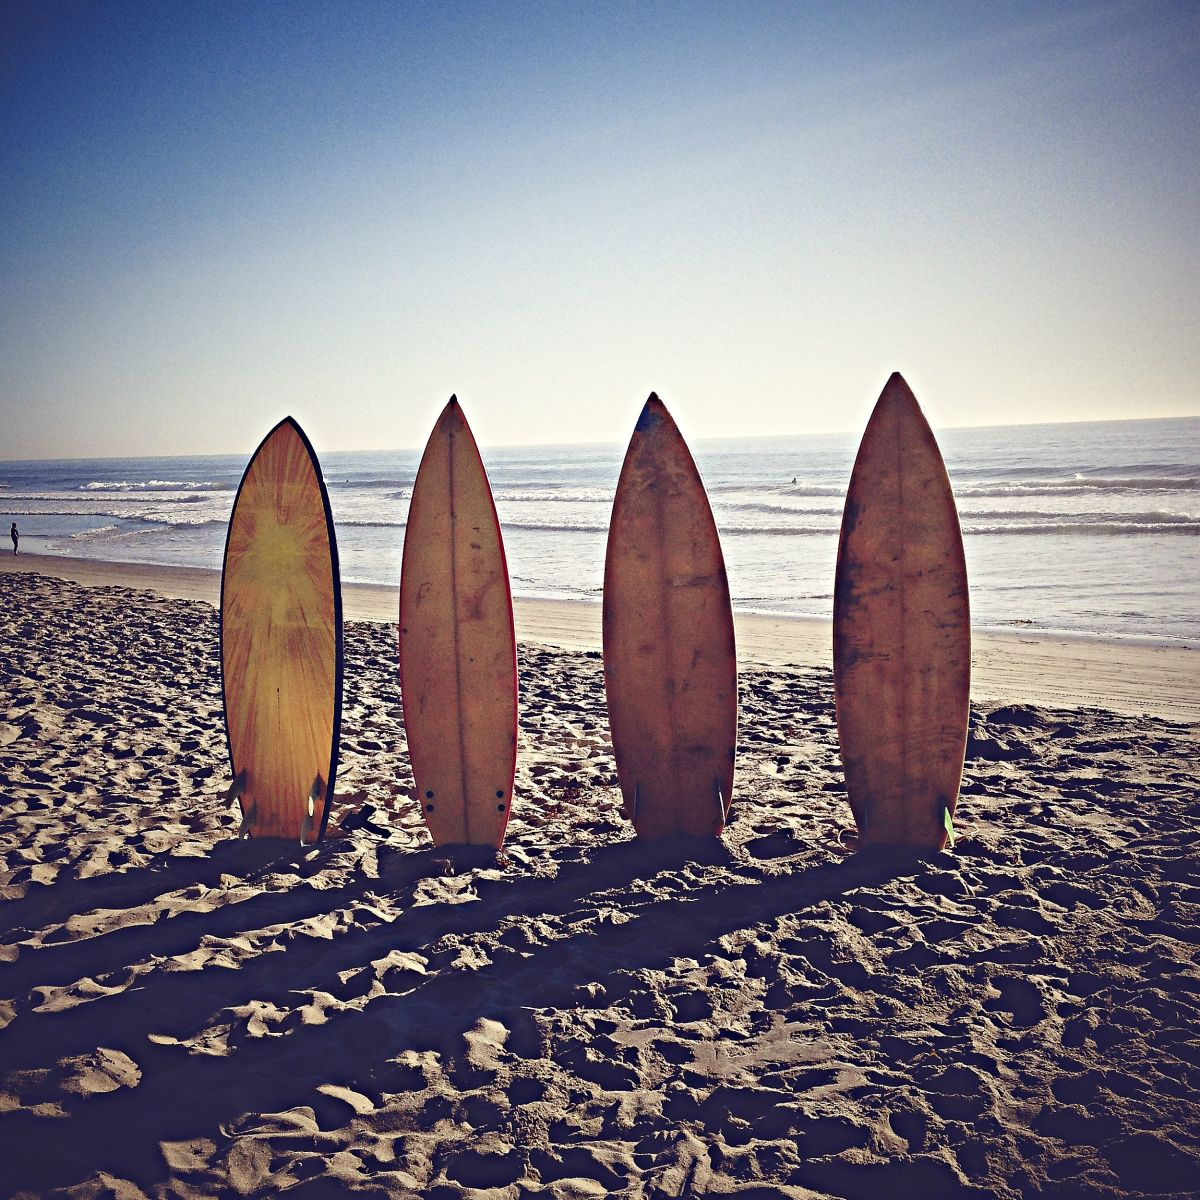 Tools to ride through this incredibly long wave.